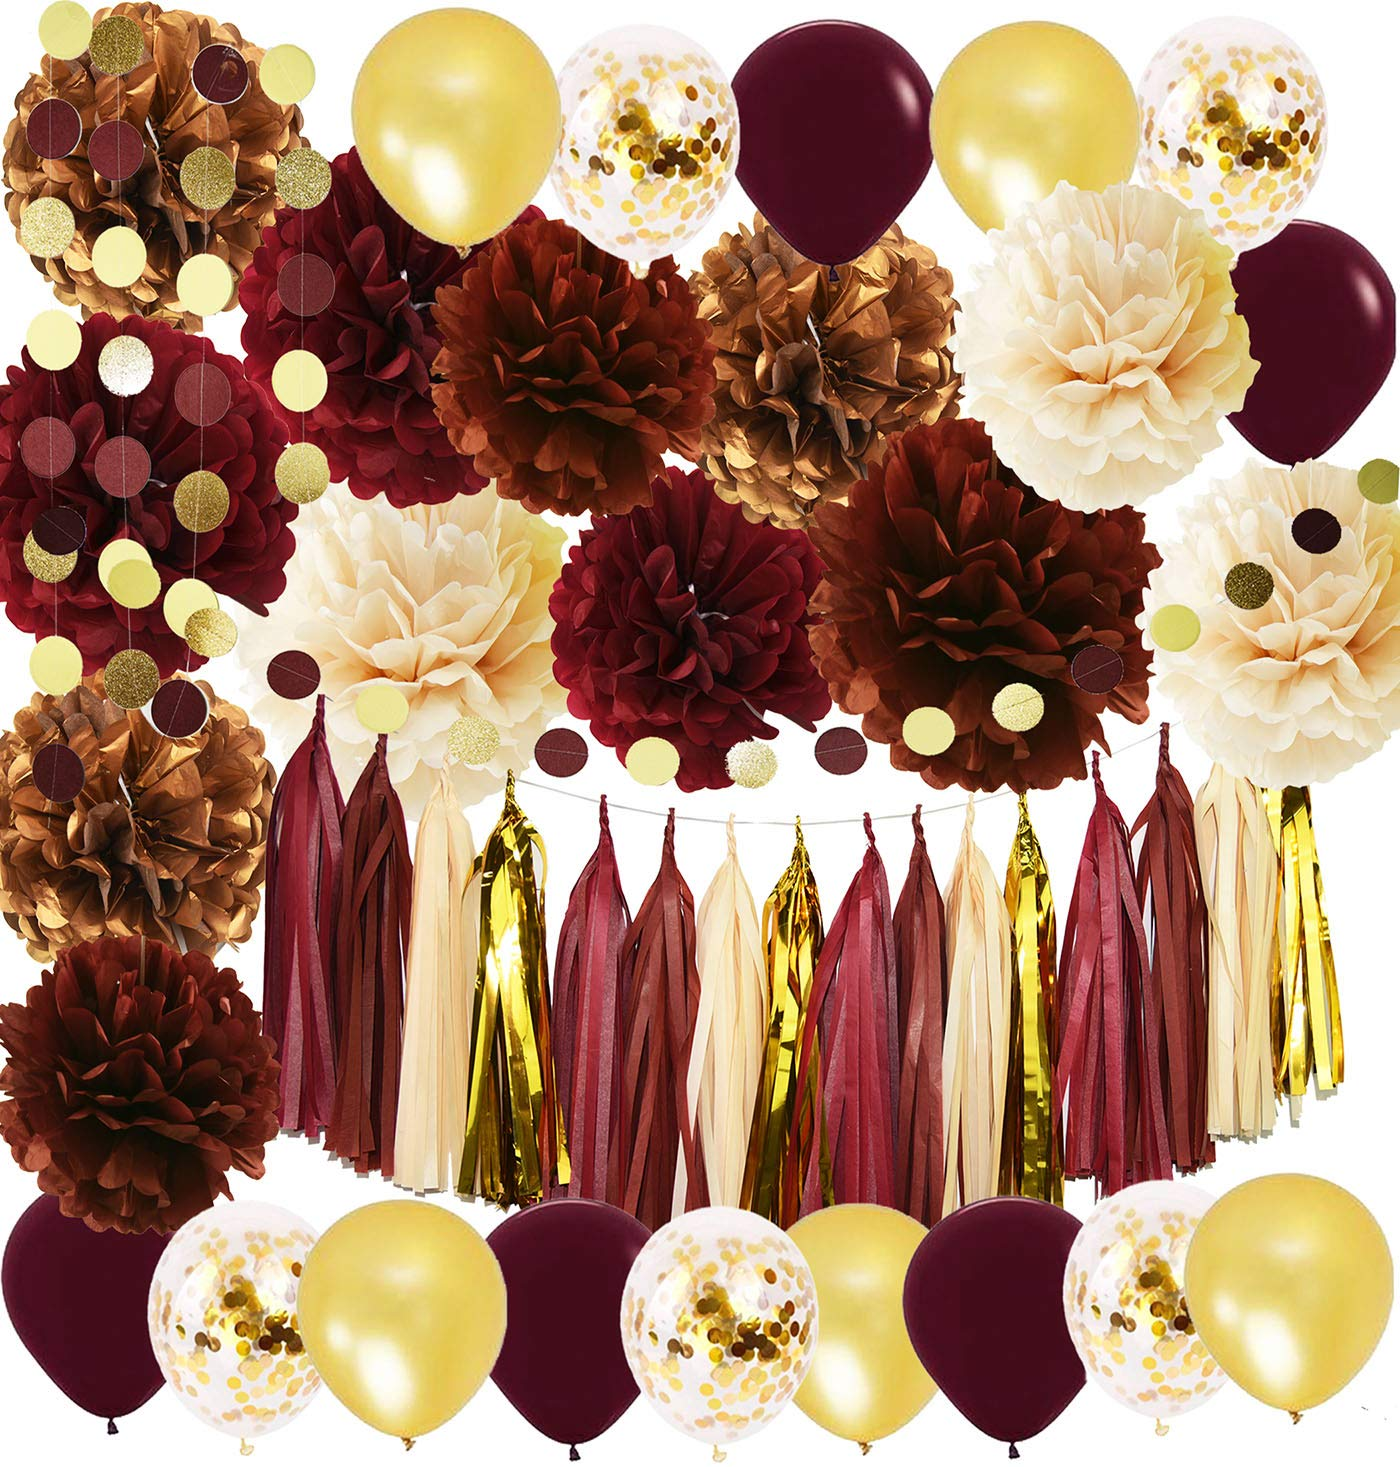 Wine Burgundy Champagne Gold Bridal Shower Decorations Fall Wedding Decorations Big